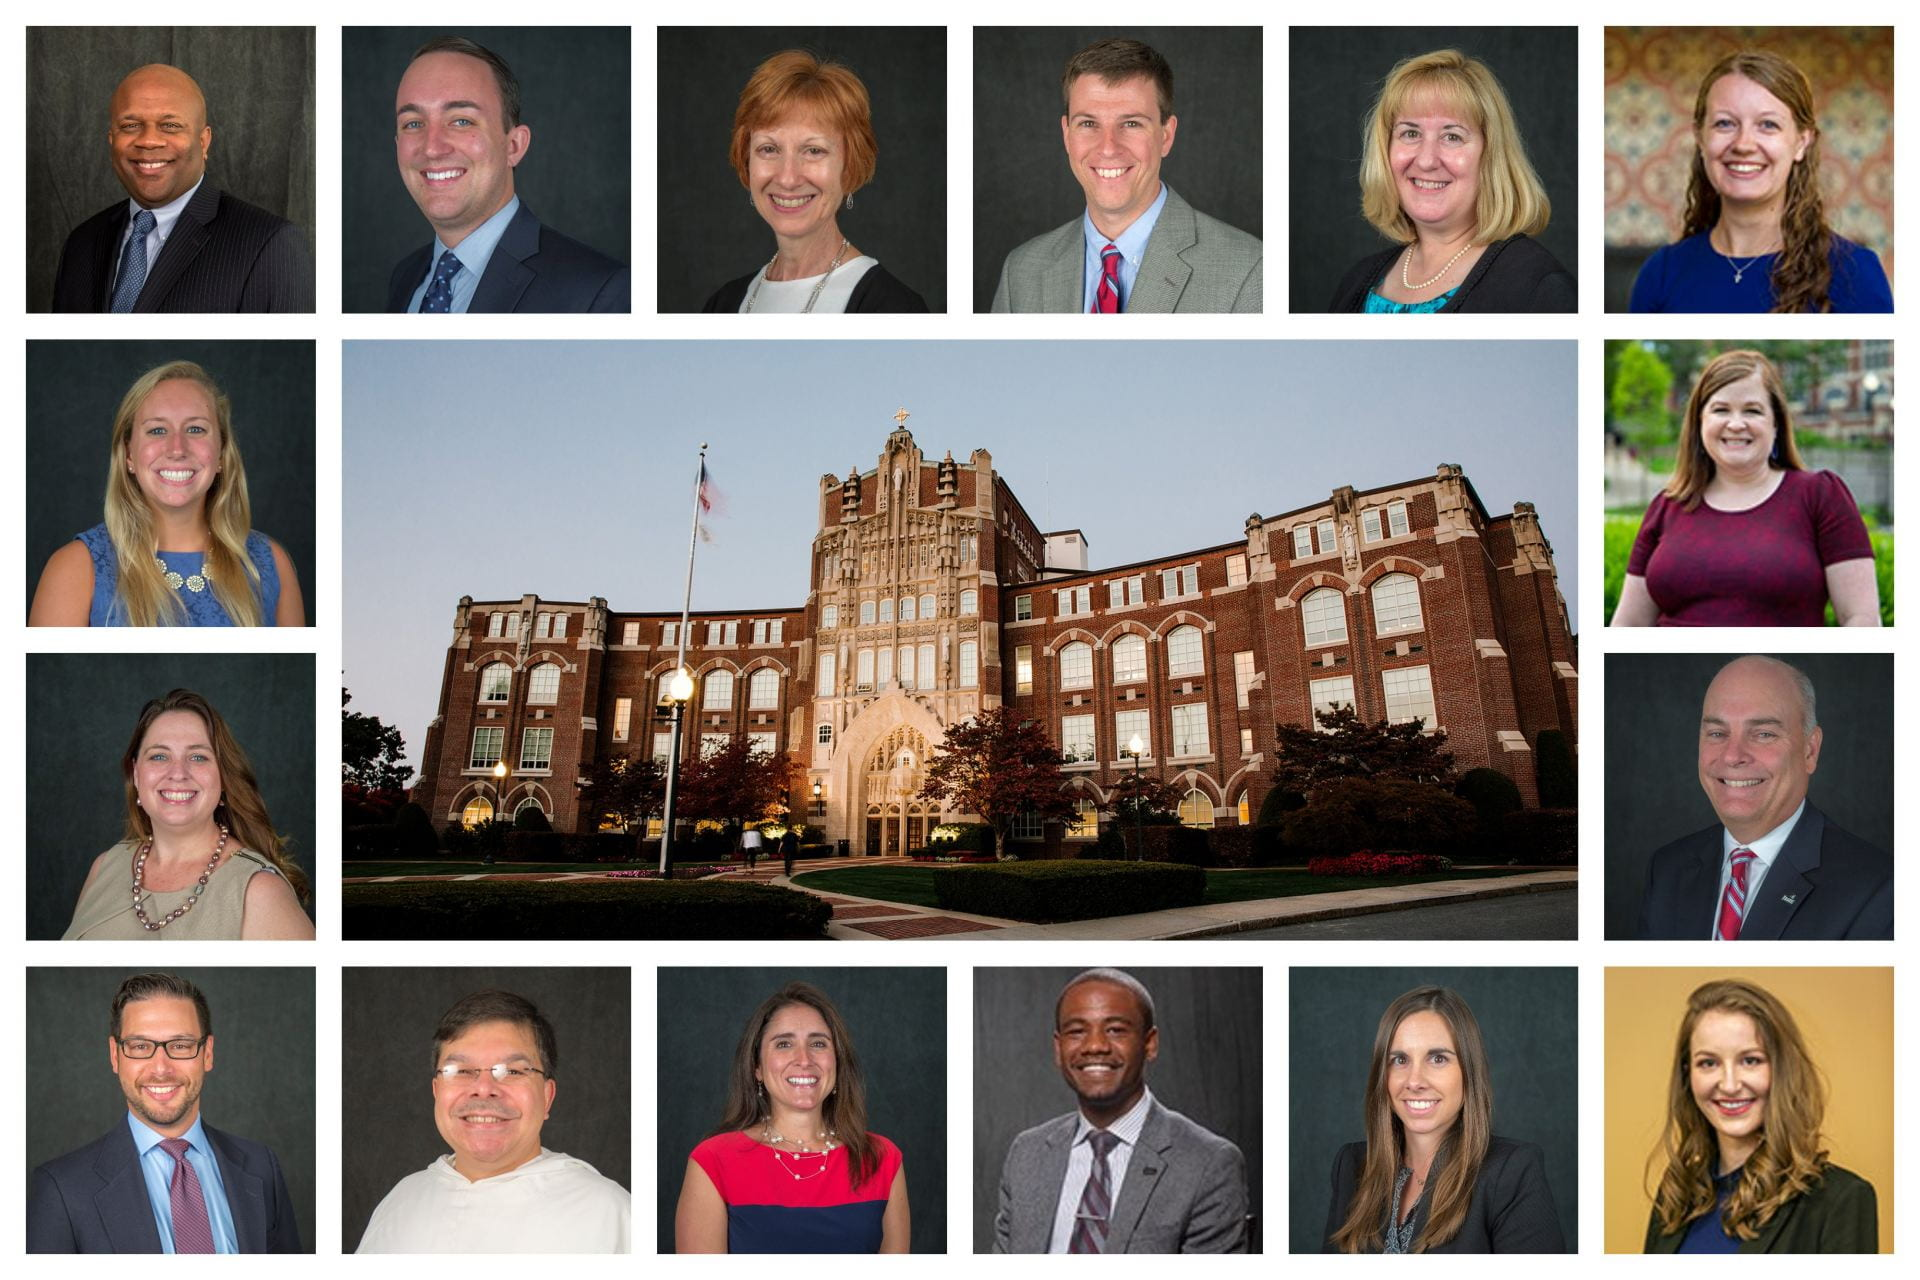 Collage of photos of the admission counseling staff.